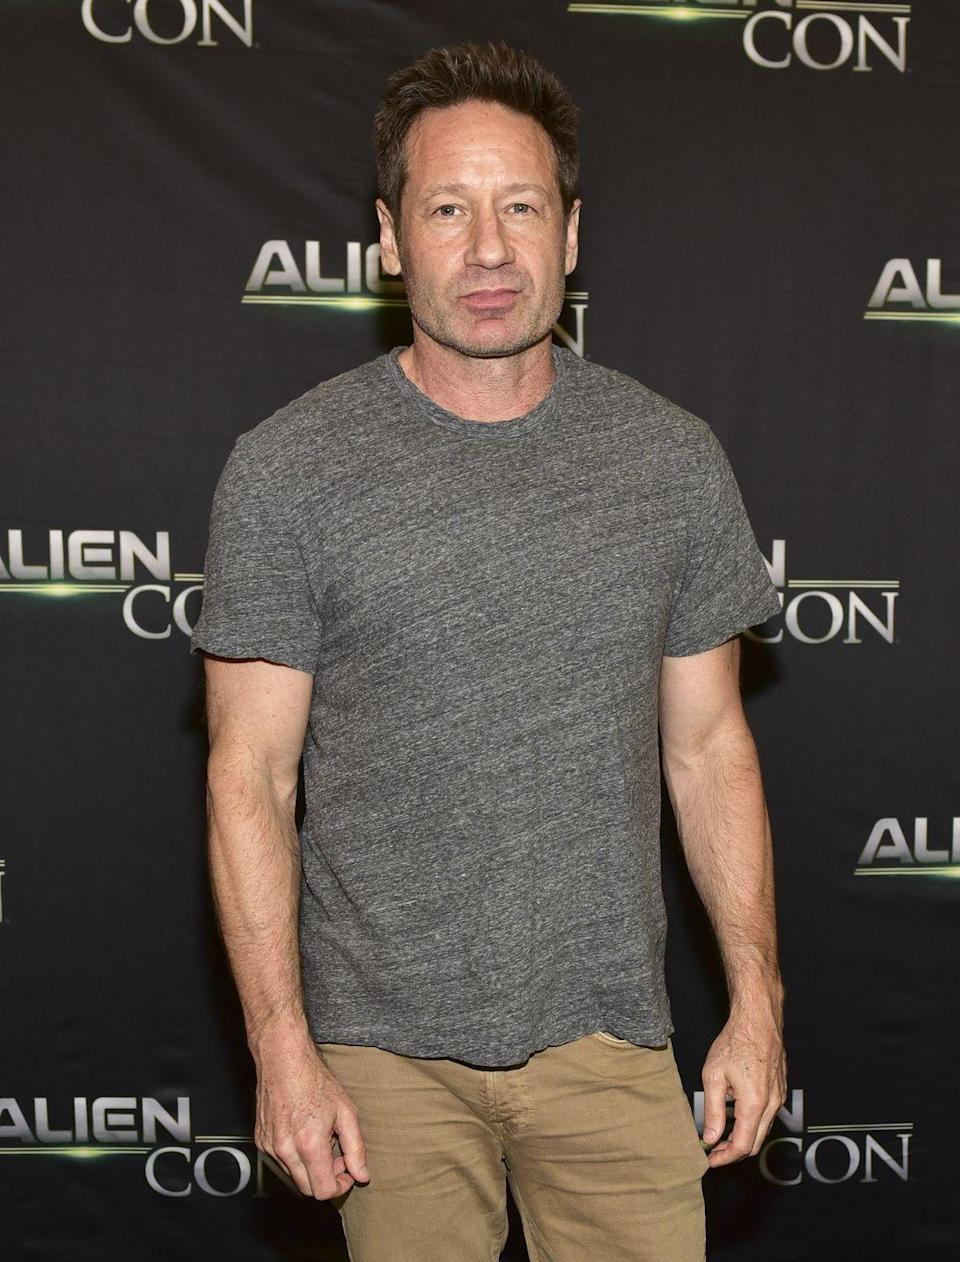 <p>The <em>X-Files</em> actor graduated summa cum laude from Princeton University in 1982 and then went on to pursue a master's degree from Yale University. </p>